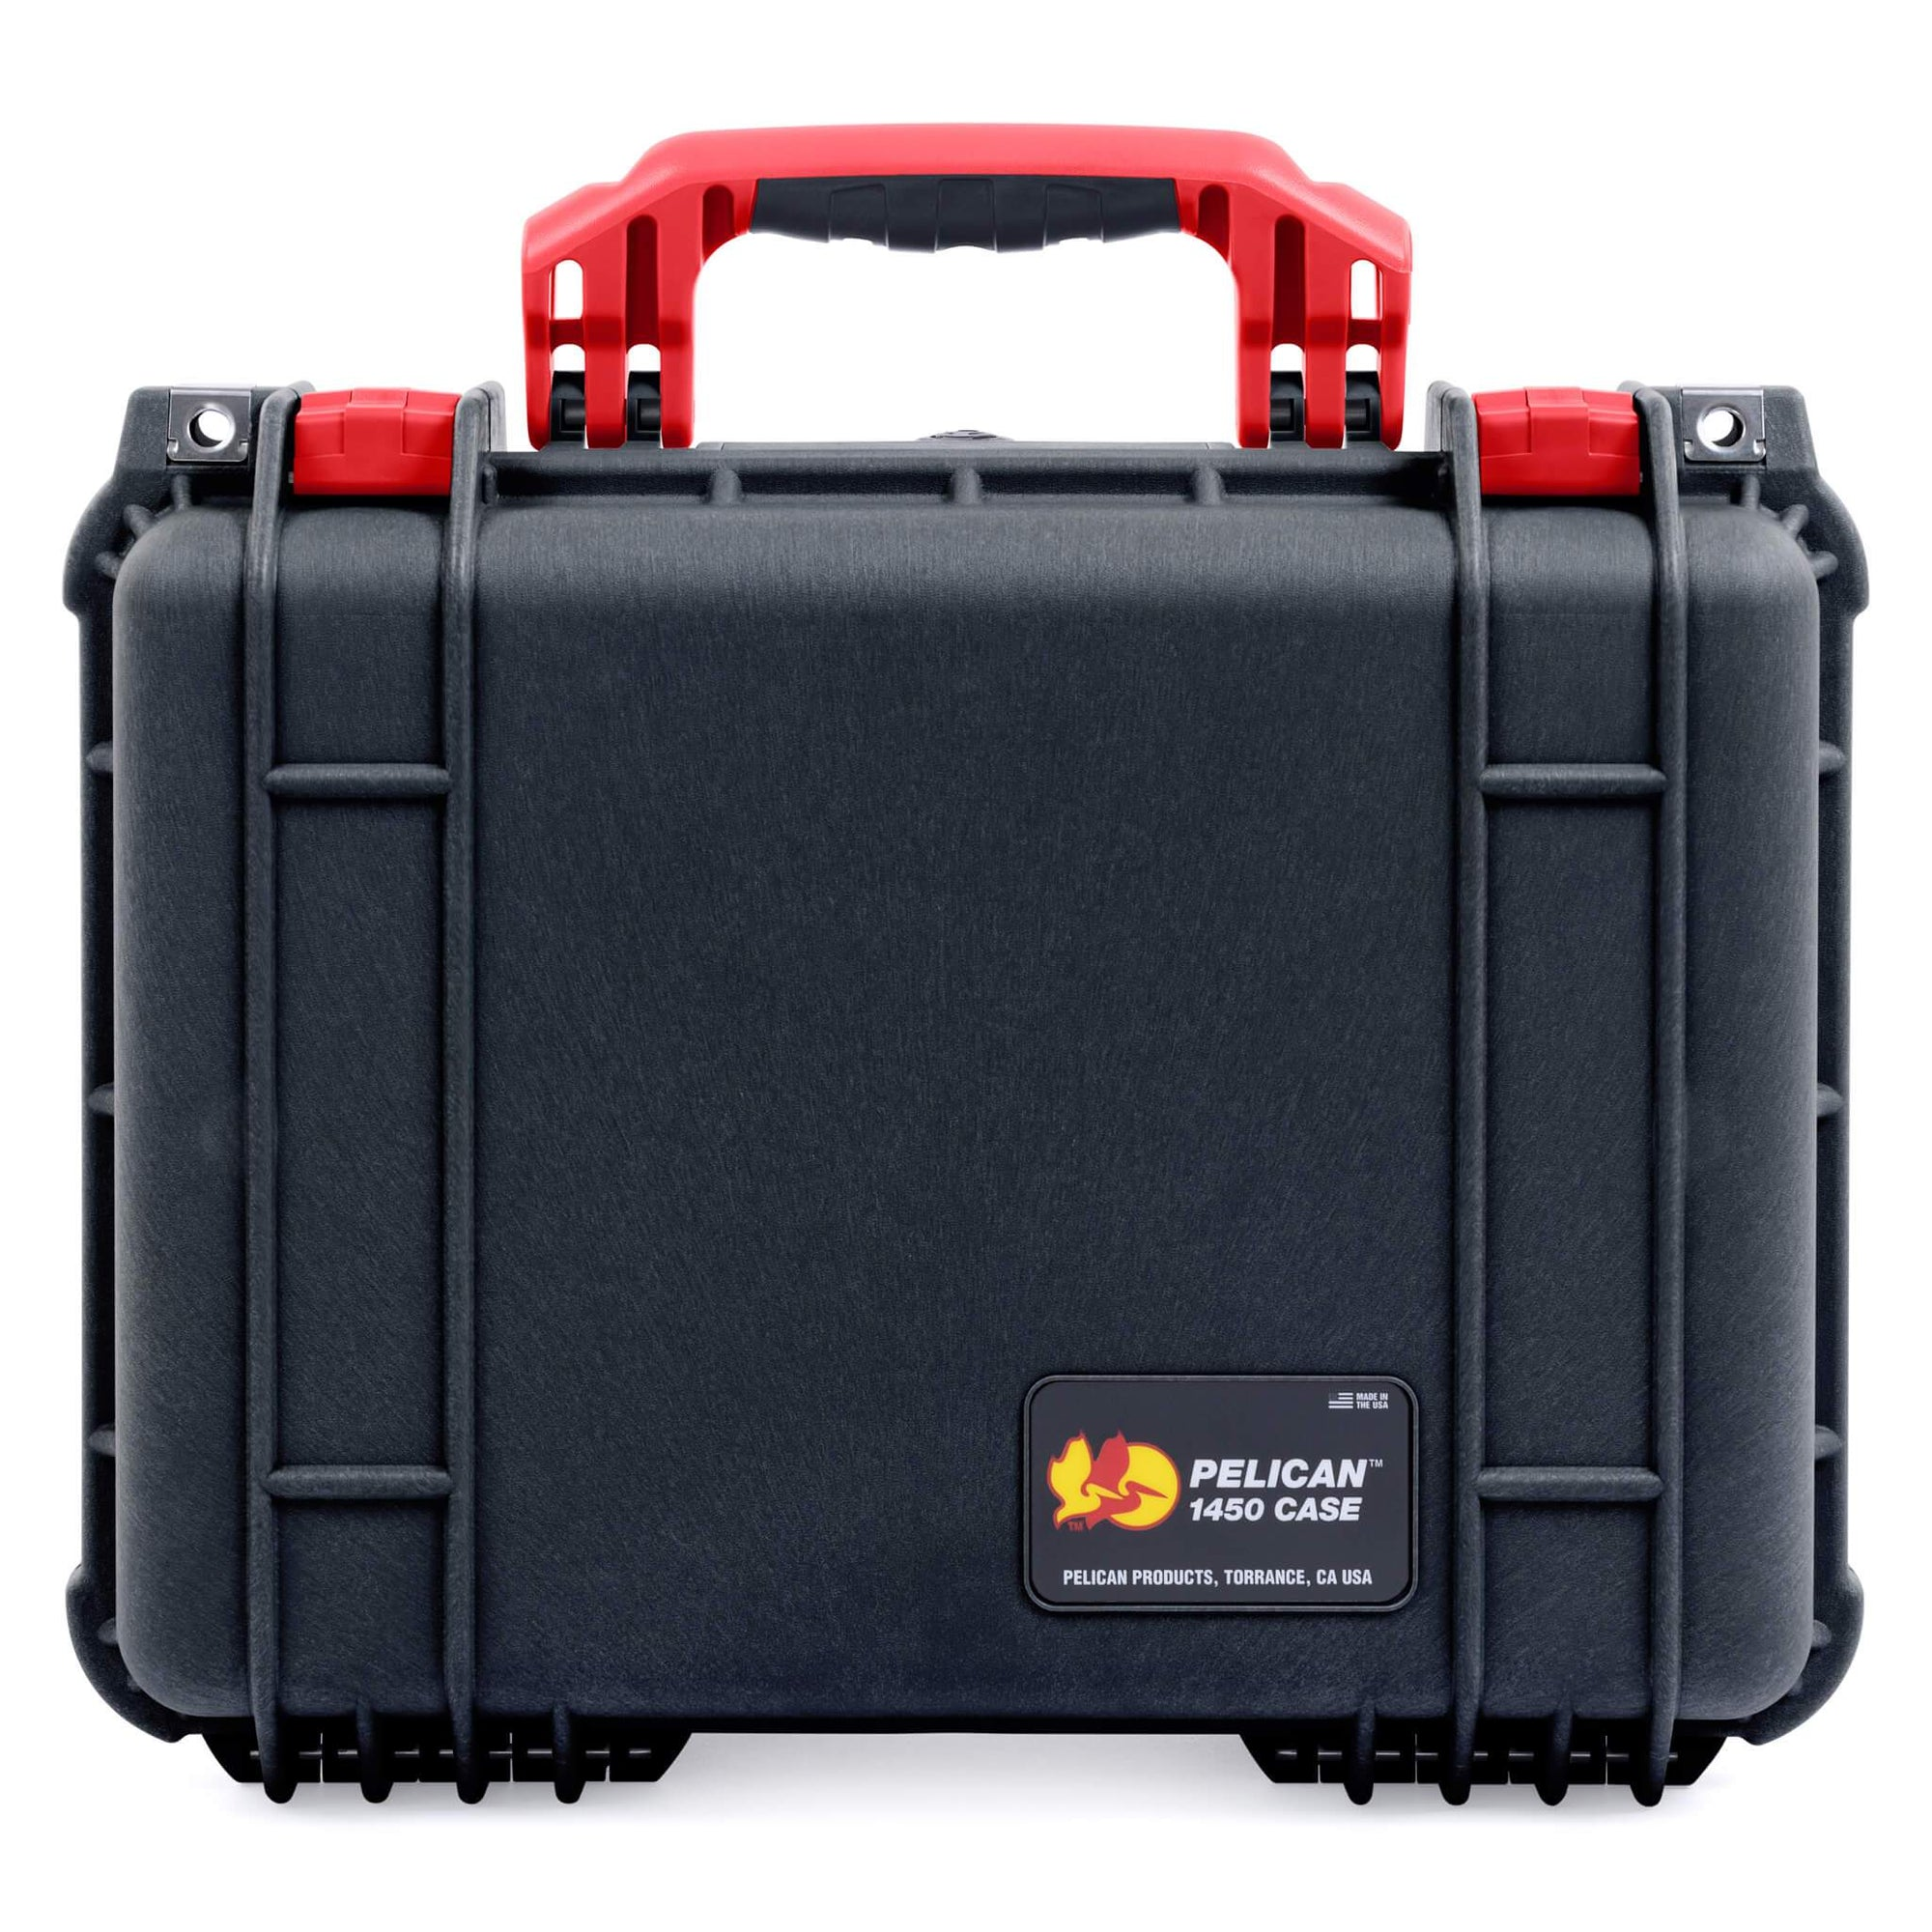 Pelican 1450 Case, Black with Red Handle & Latches